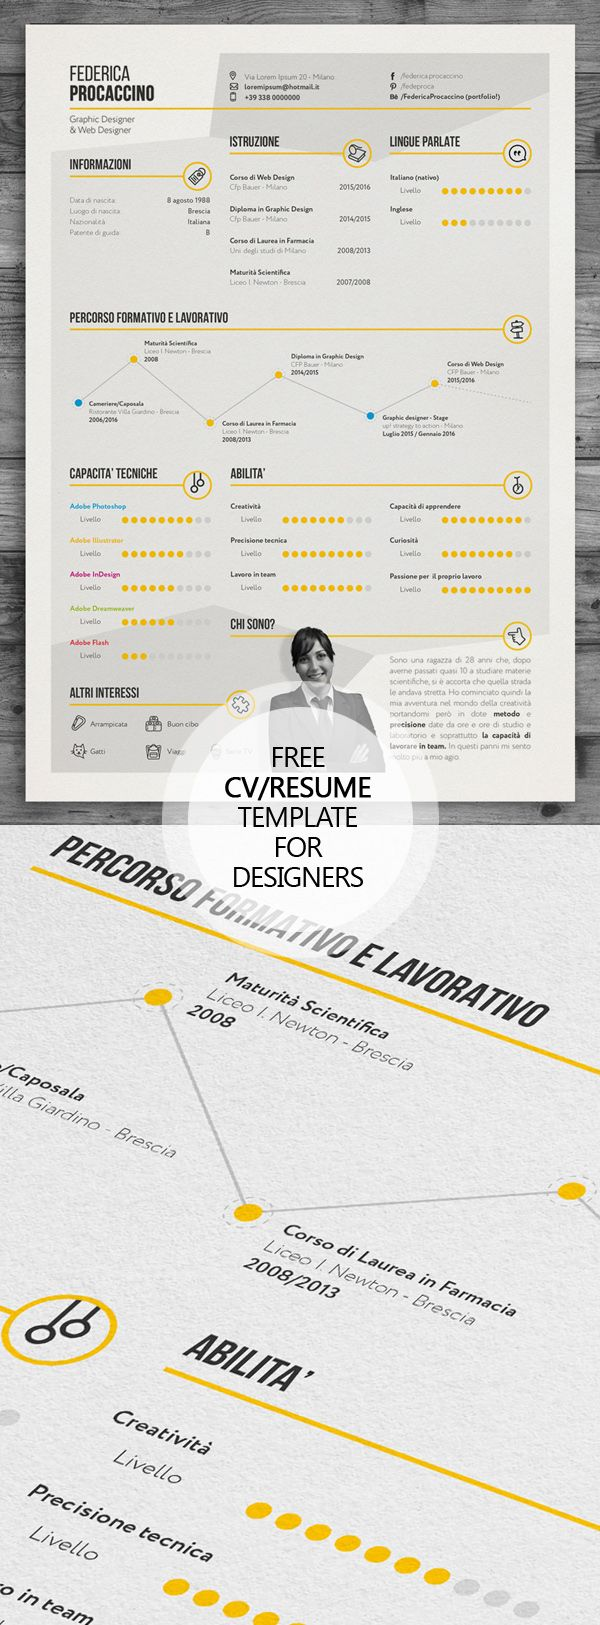 best ideas about cover letter templates 15 psd cv resume and cover letter templates